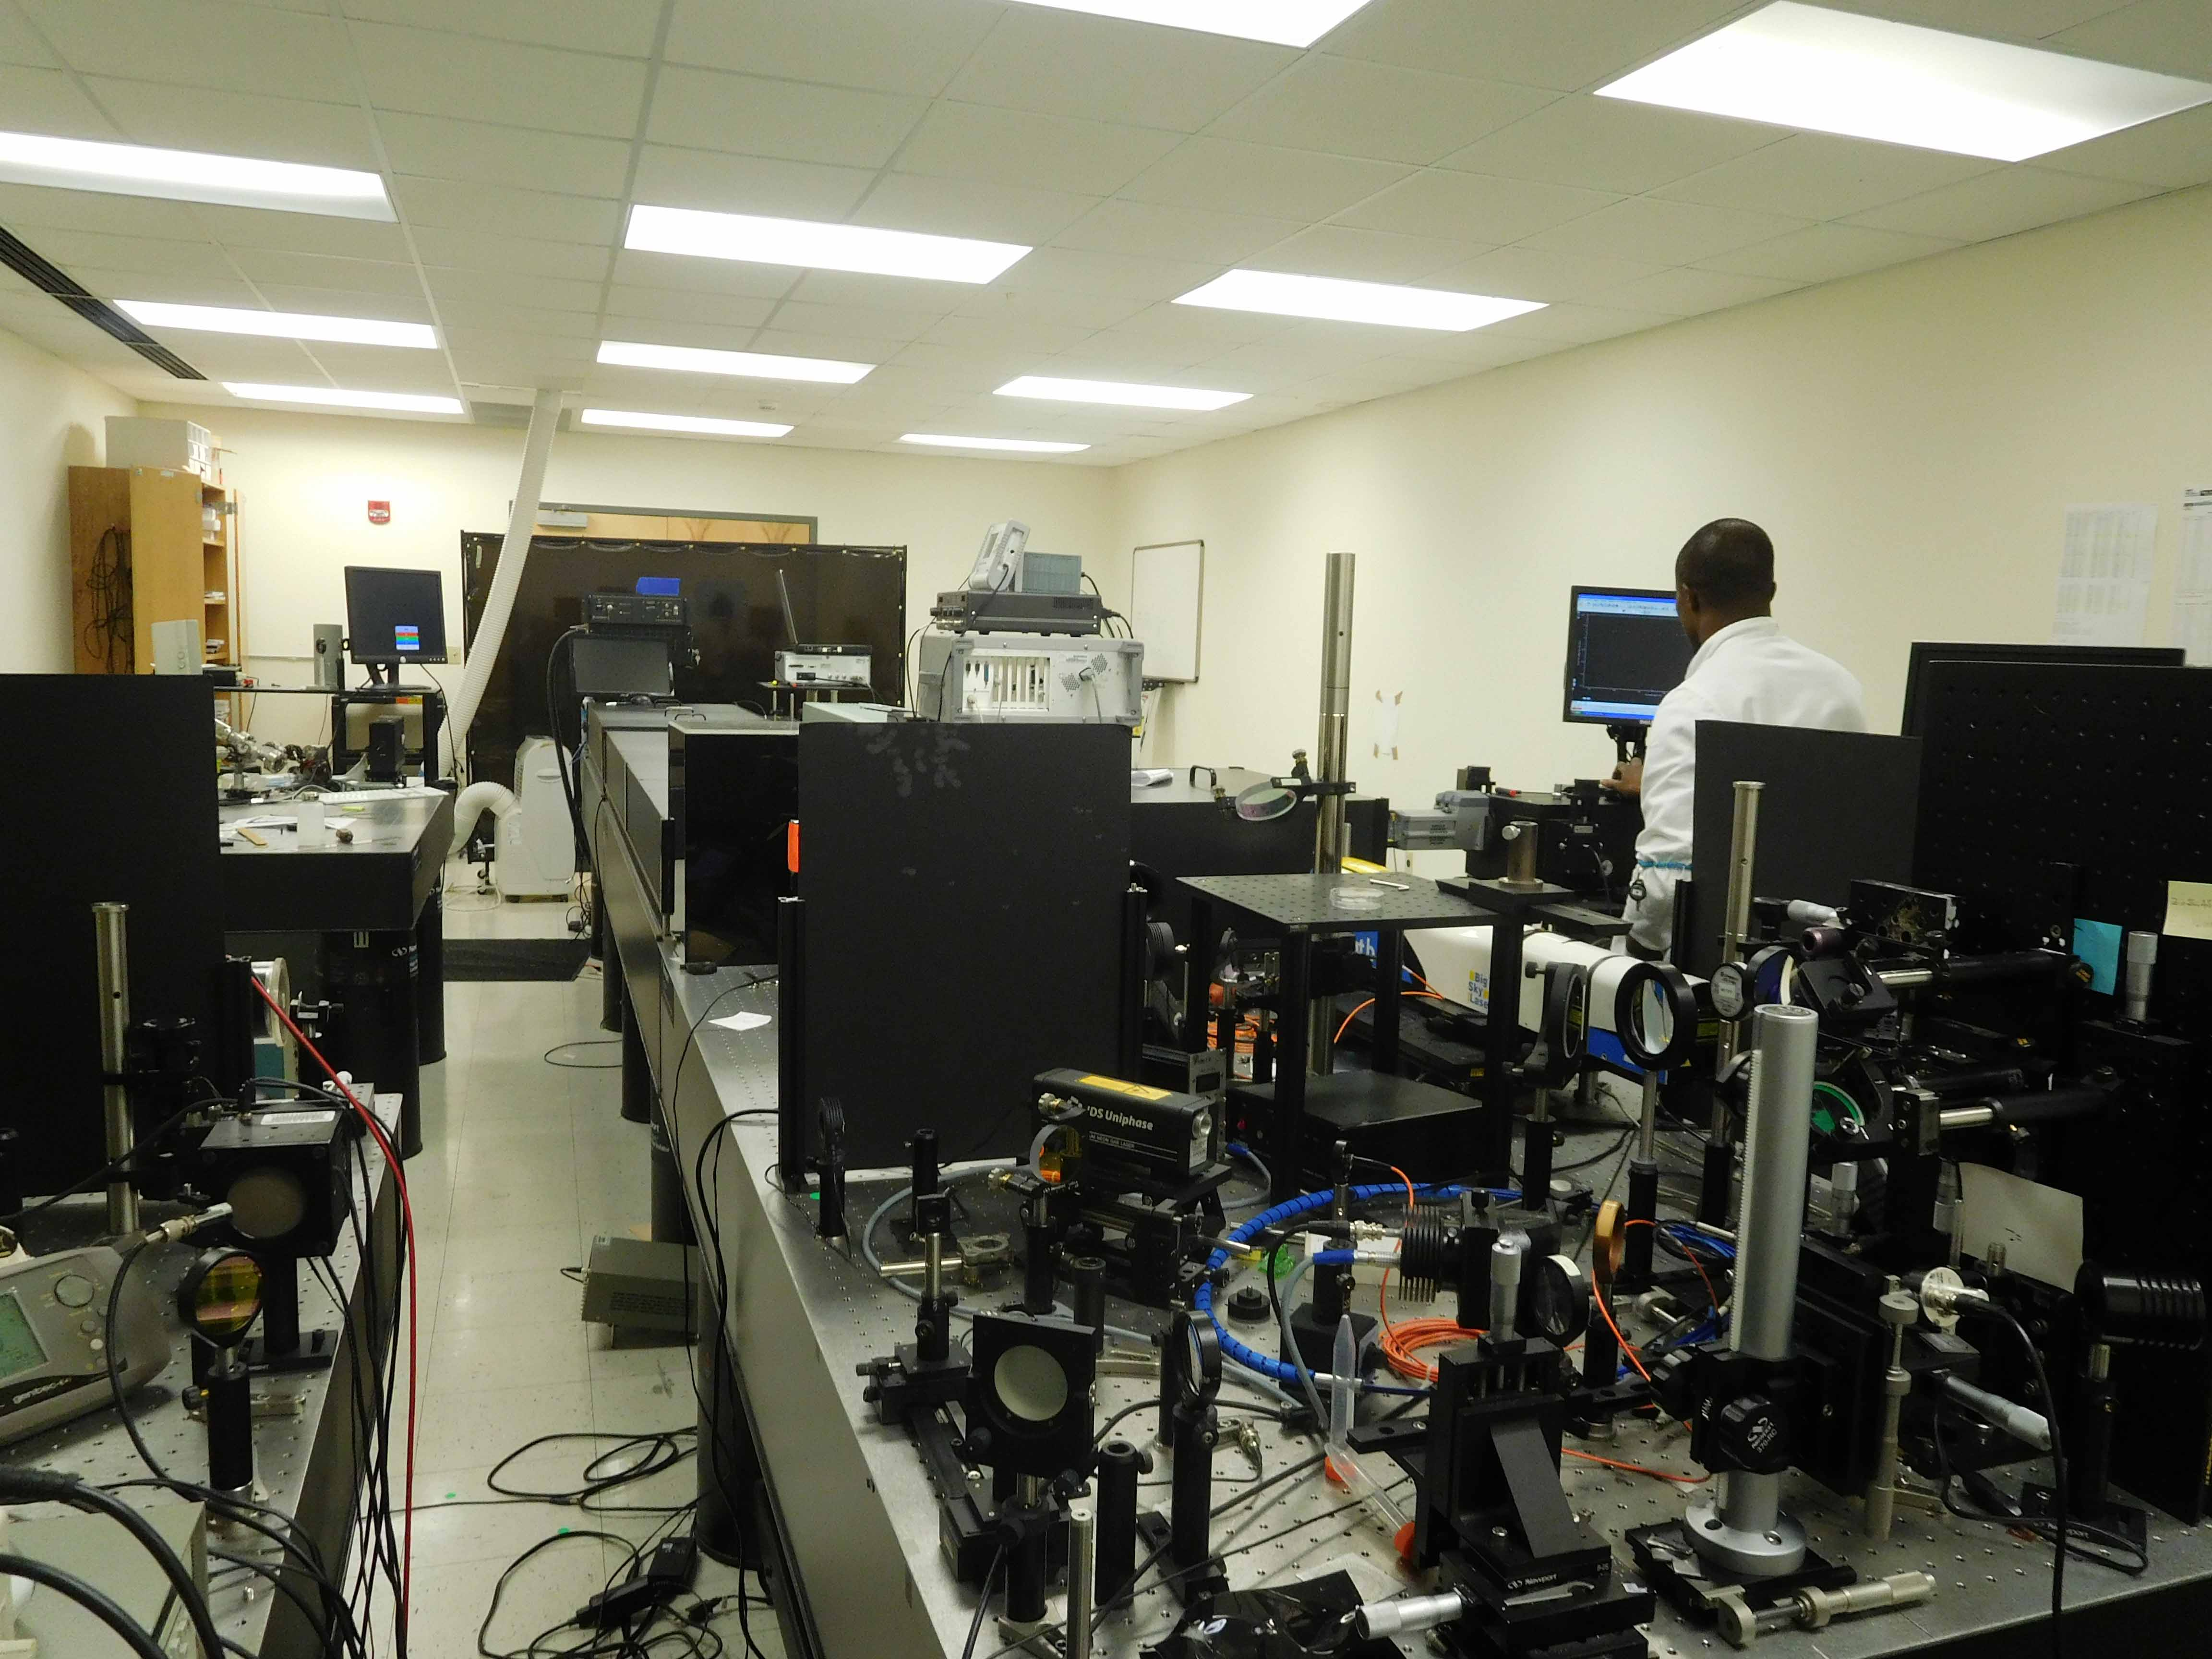 The FAMU Center for Plasma Science and Technology hard at work with lasers